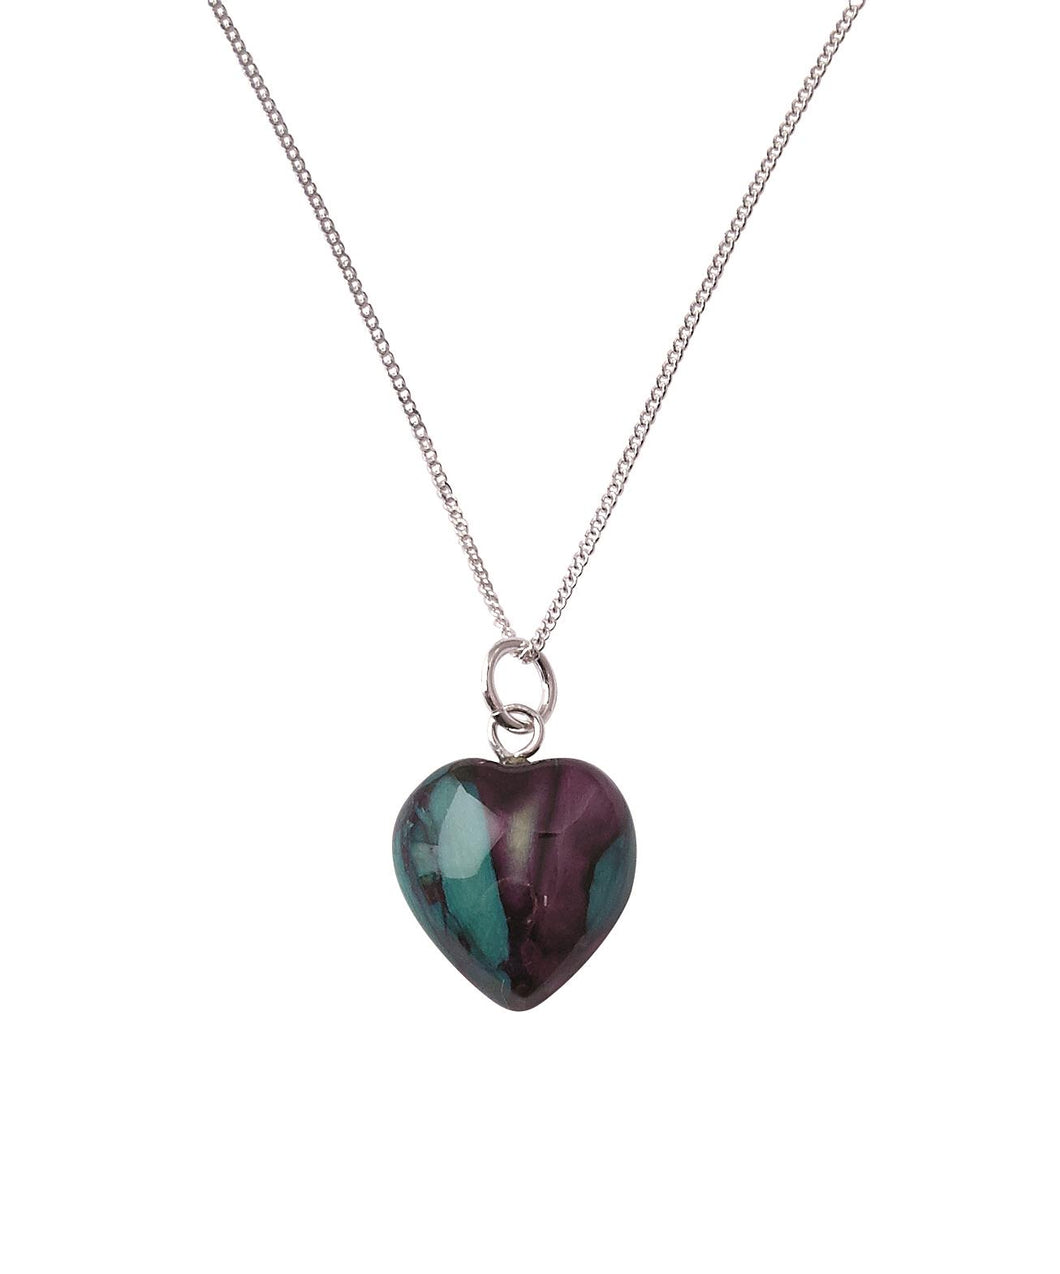 Heathergems | Sterling Silver Wee Heart Pendant